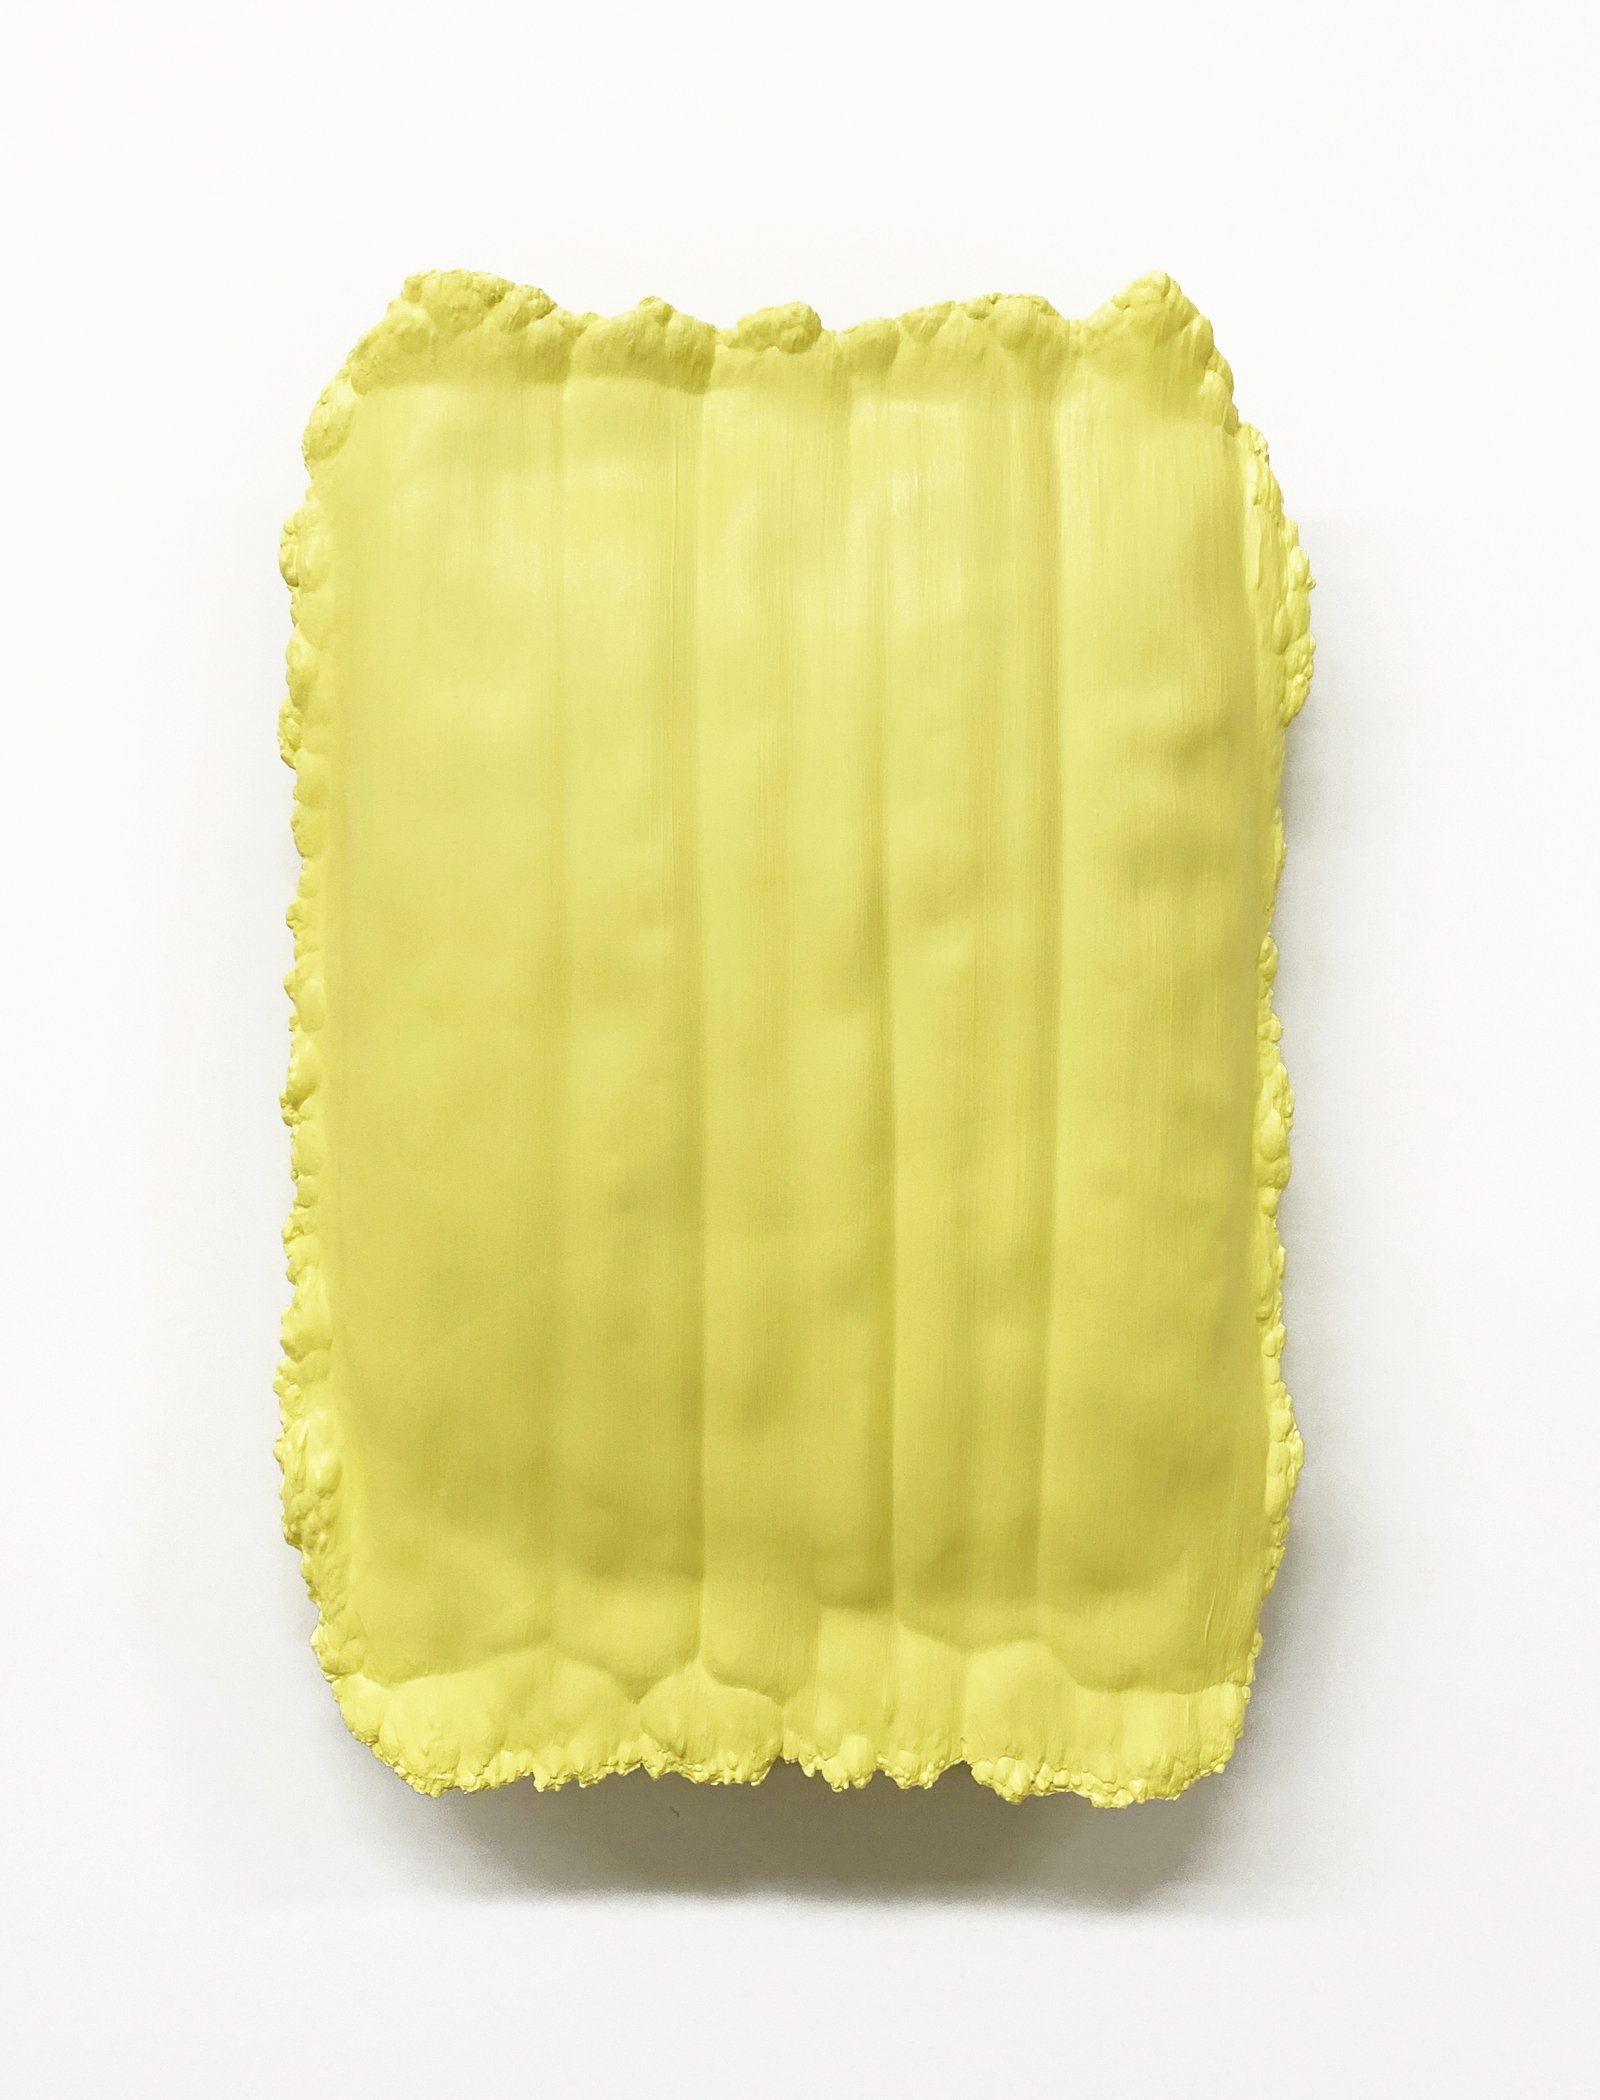 Lite Yellow Cast Painting